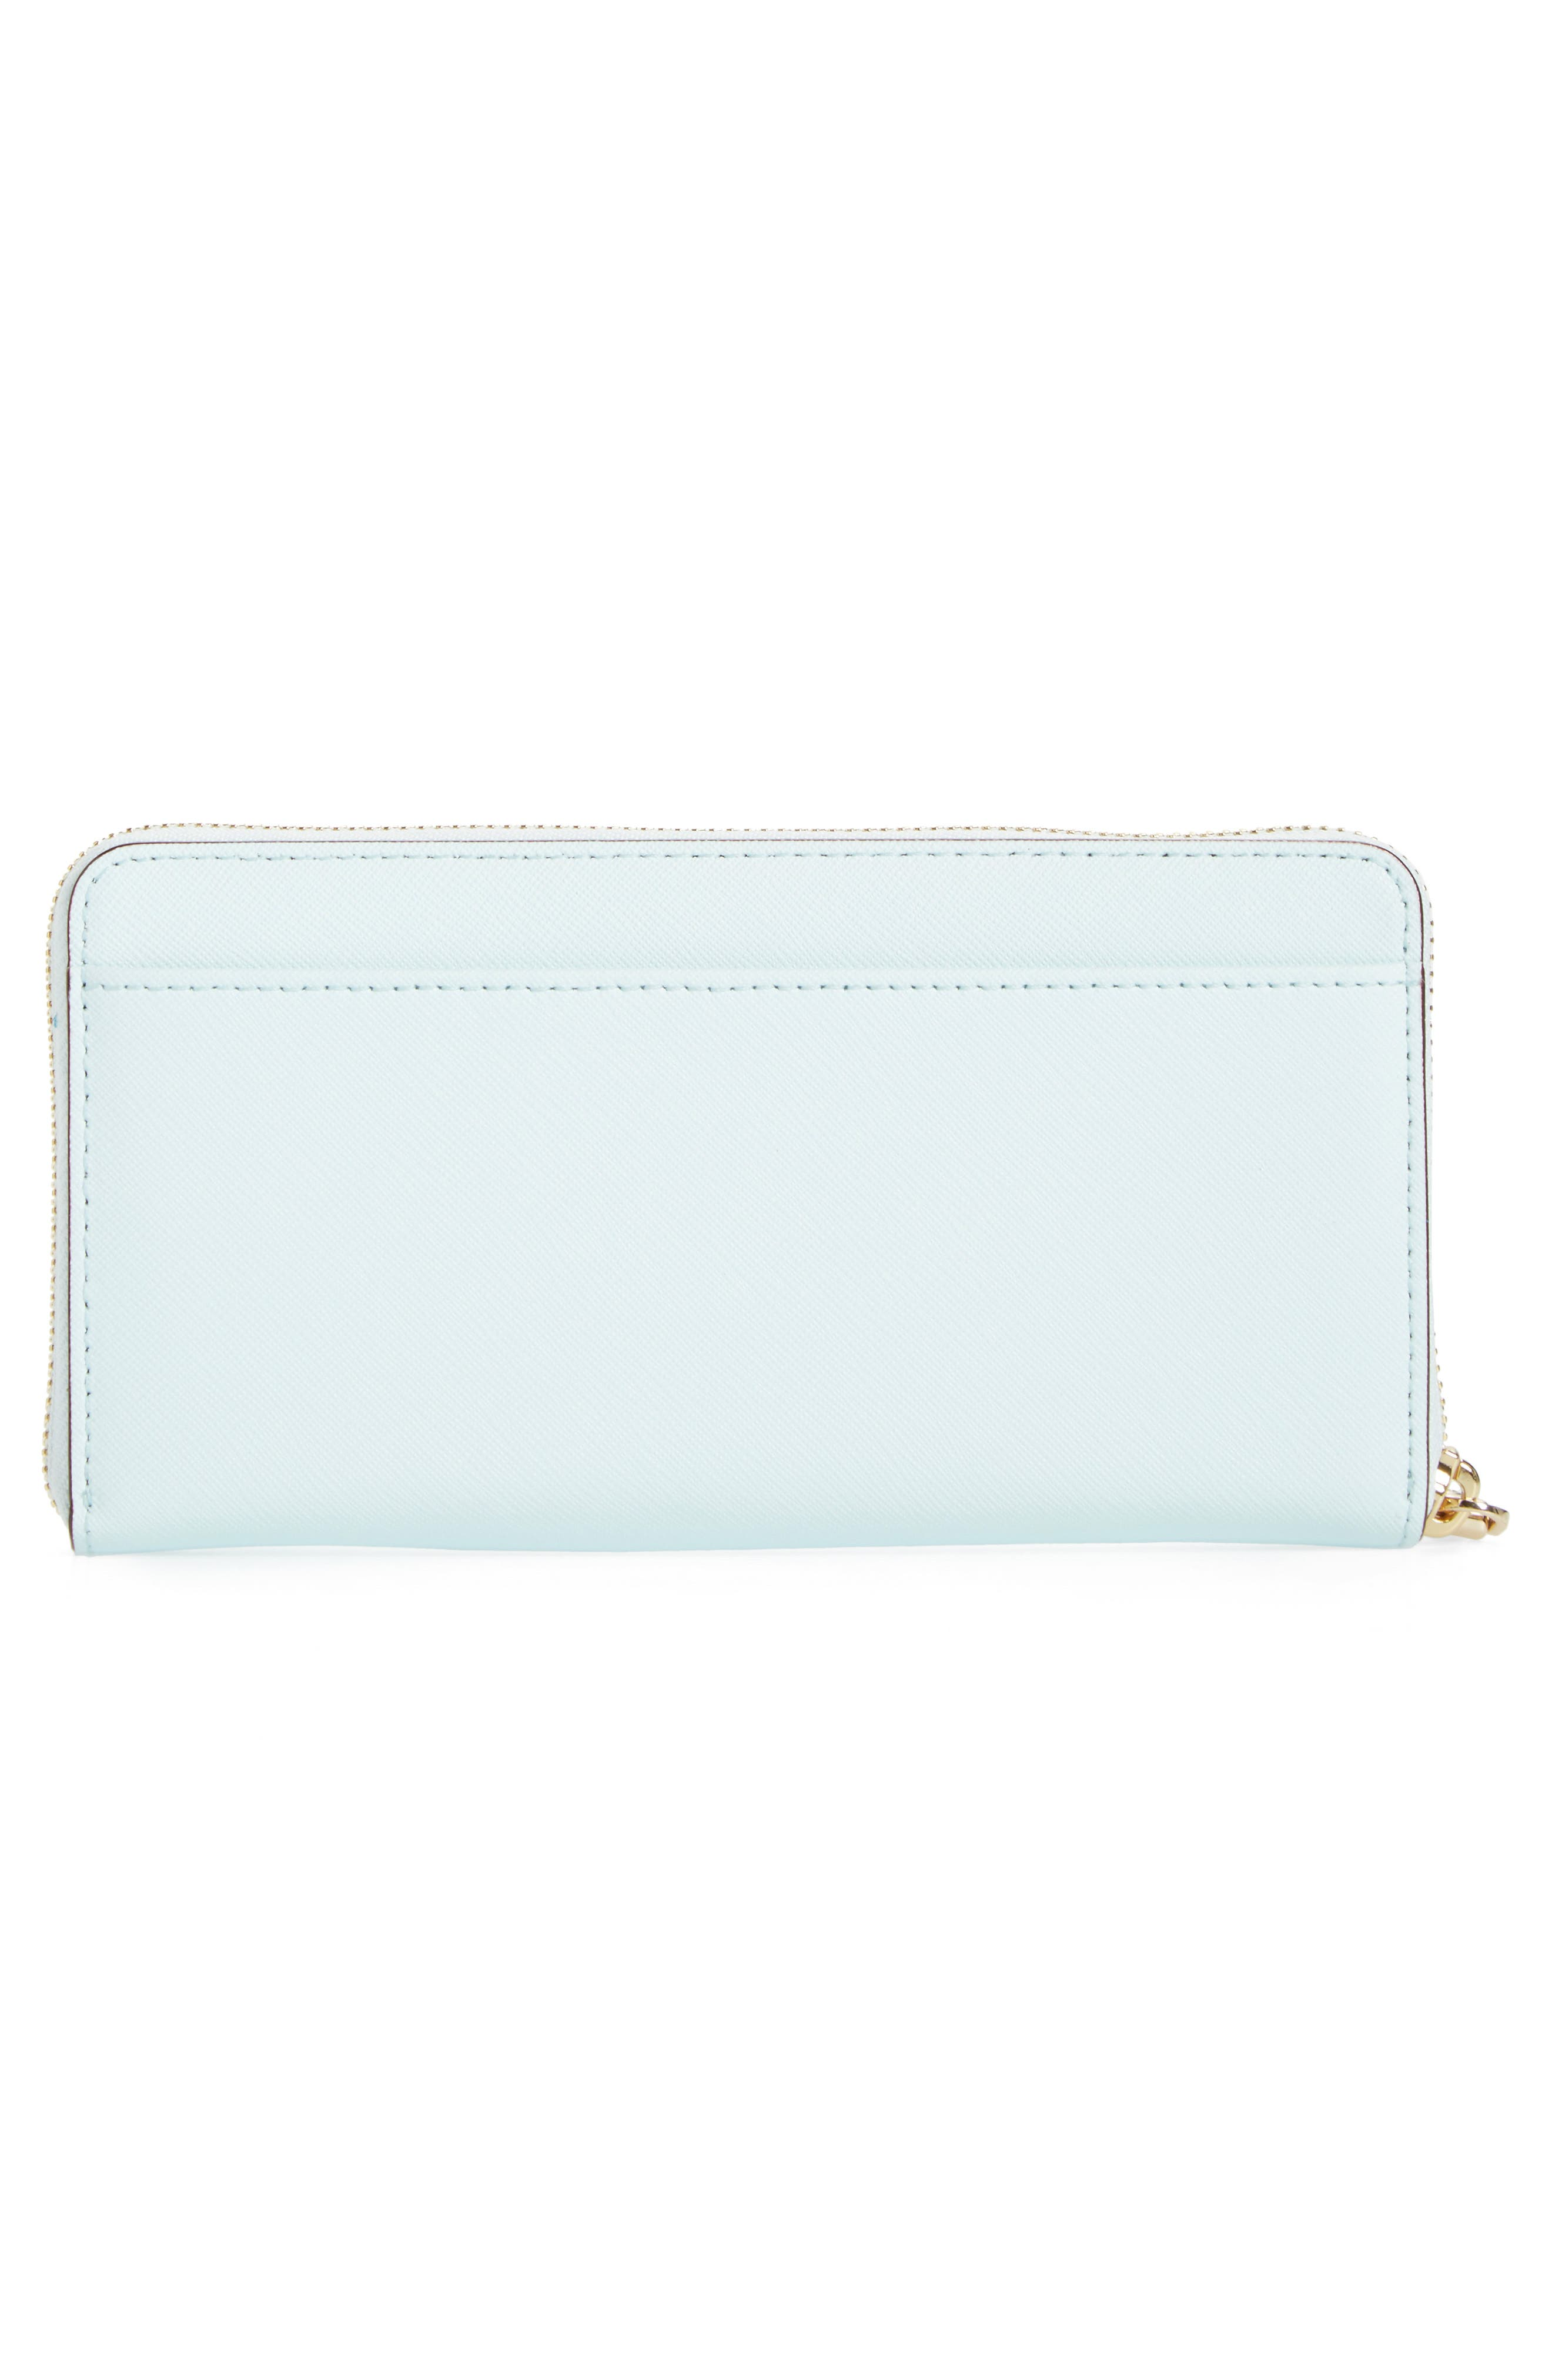 'cameron street - lacey' leather wallet,                             Alternate thumbnail 75, color,